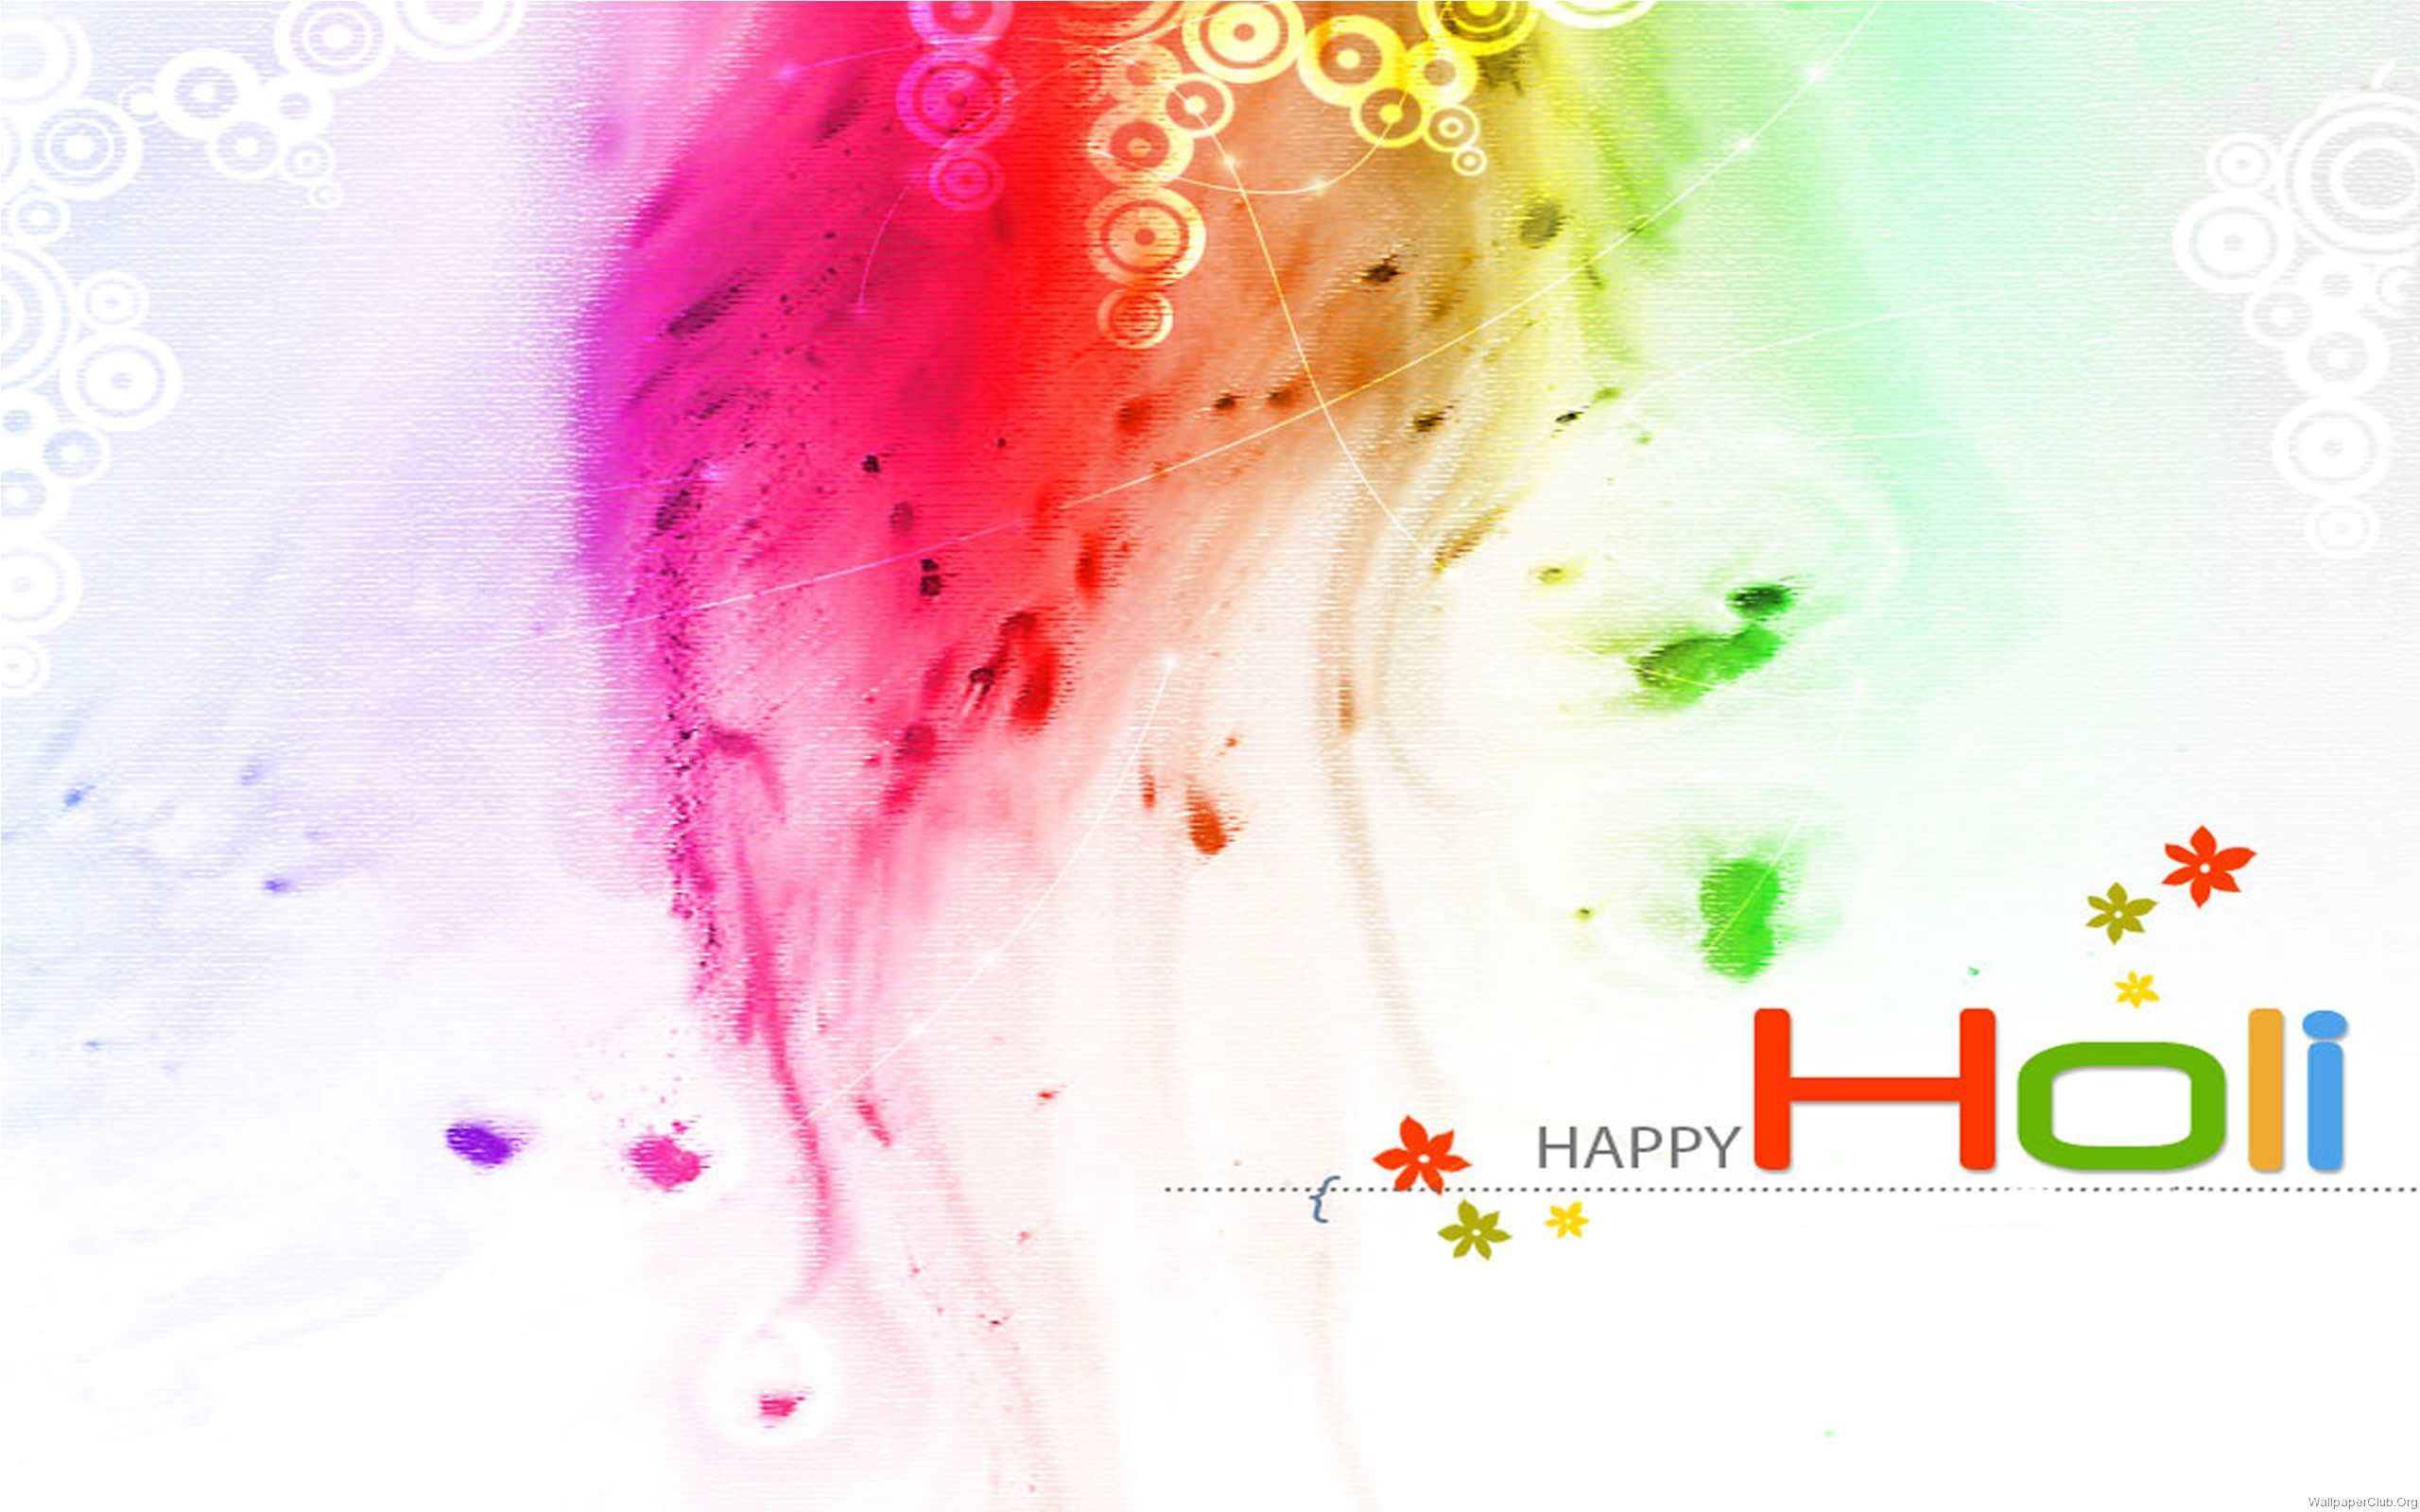 Holi Wallpapers 1R6D1OX 038 Mb   4USkY 2560x1600